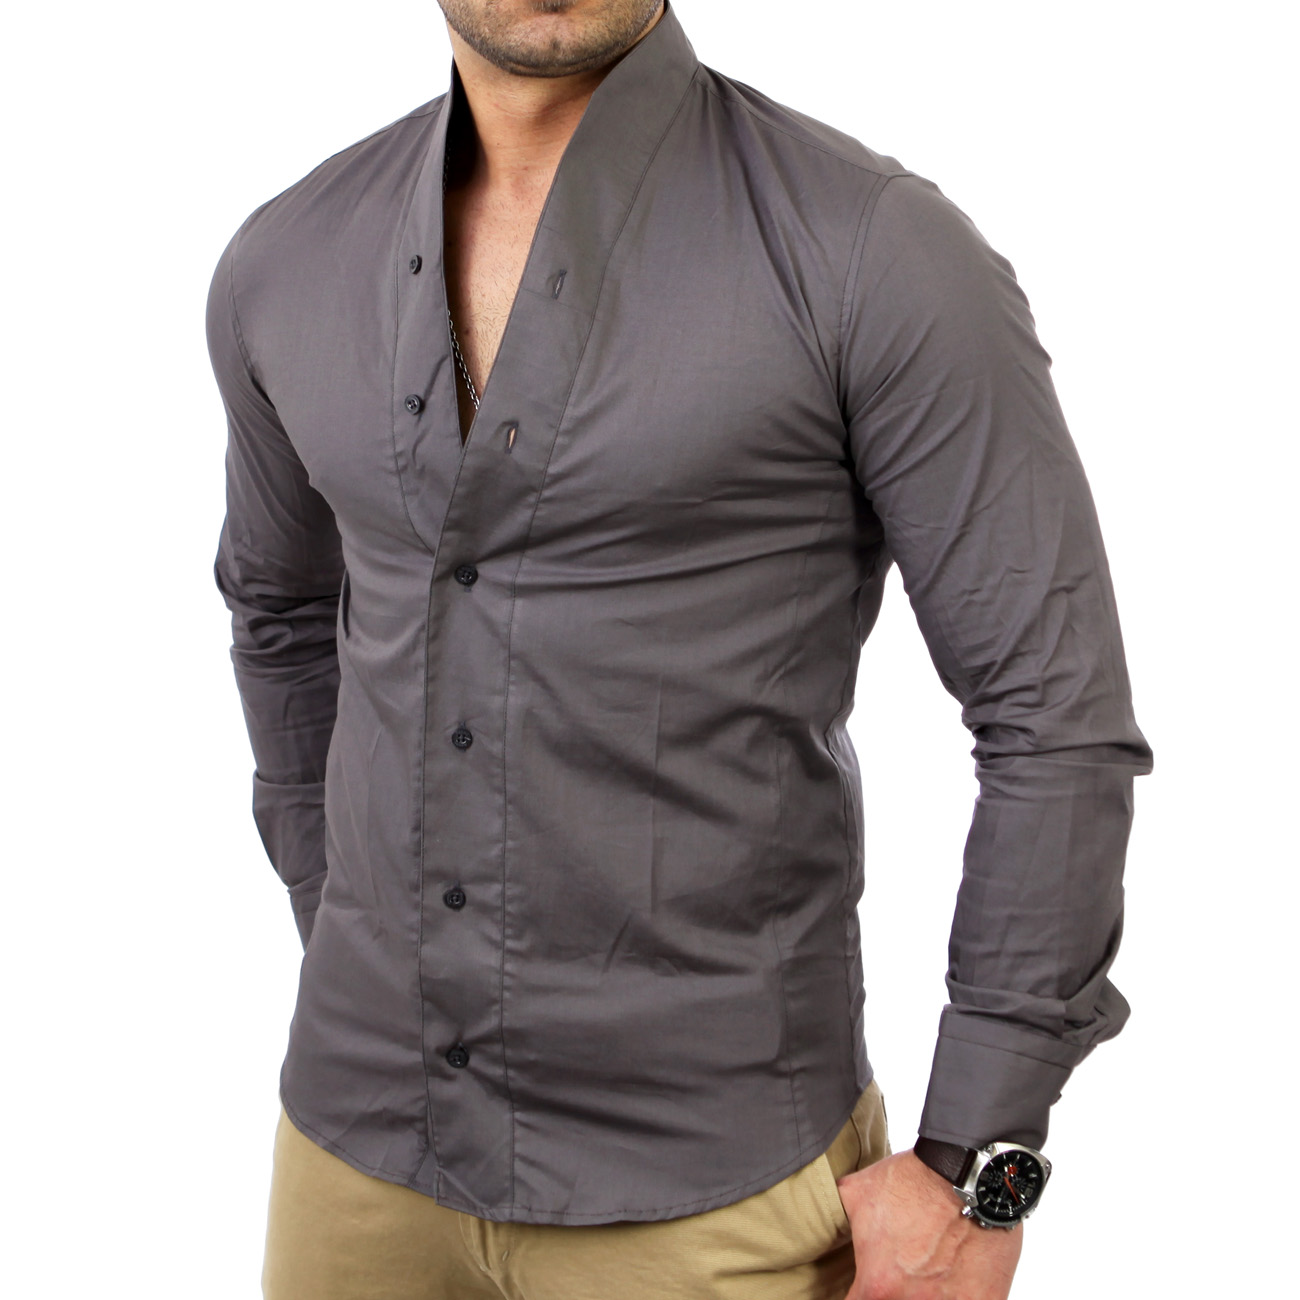 reslad mens stand collar shirt casual polo t shirt rs 7100 new ebay. Black Bedroom Furniture Sets. Home Design Ideas